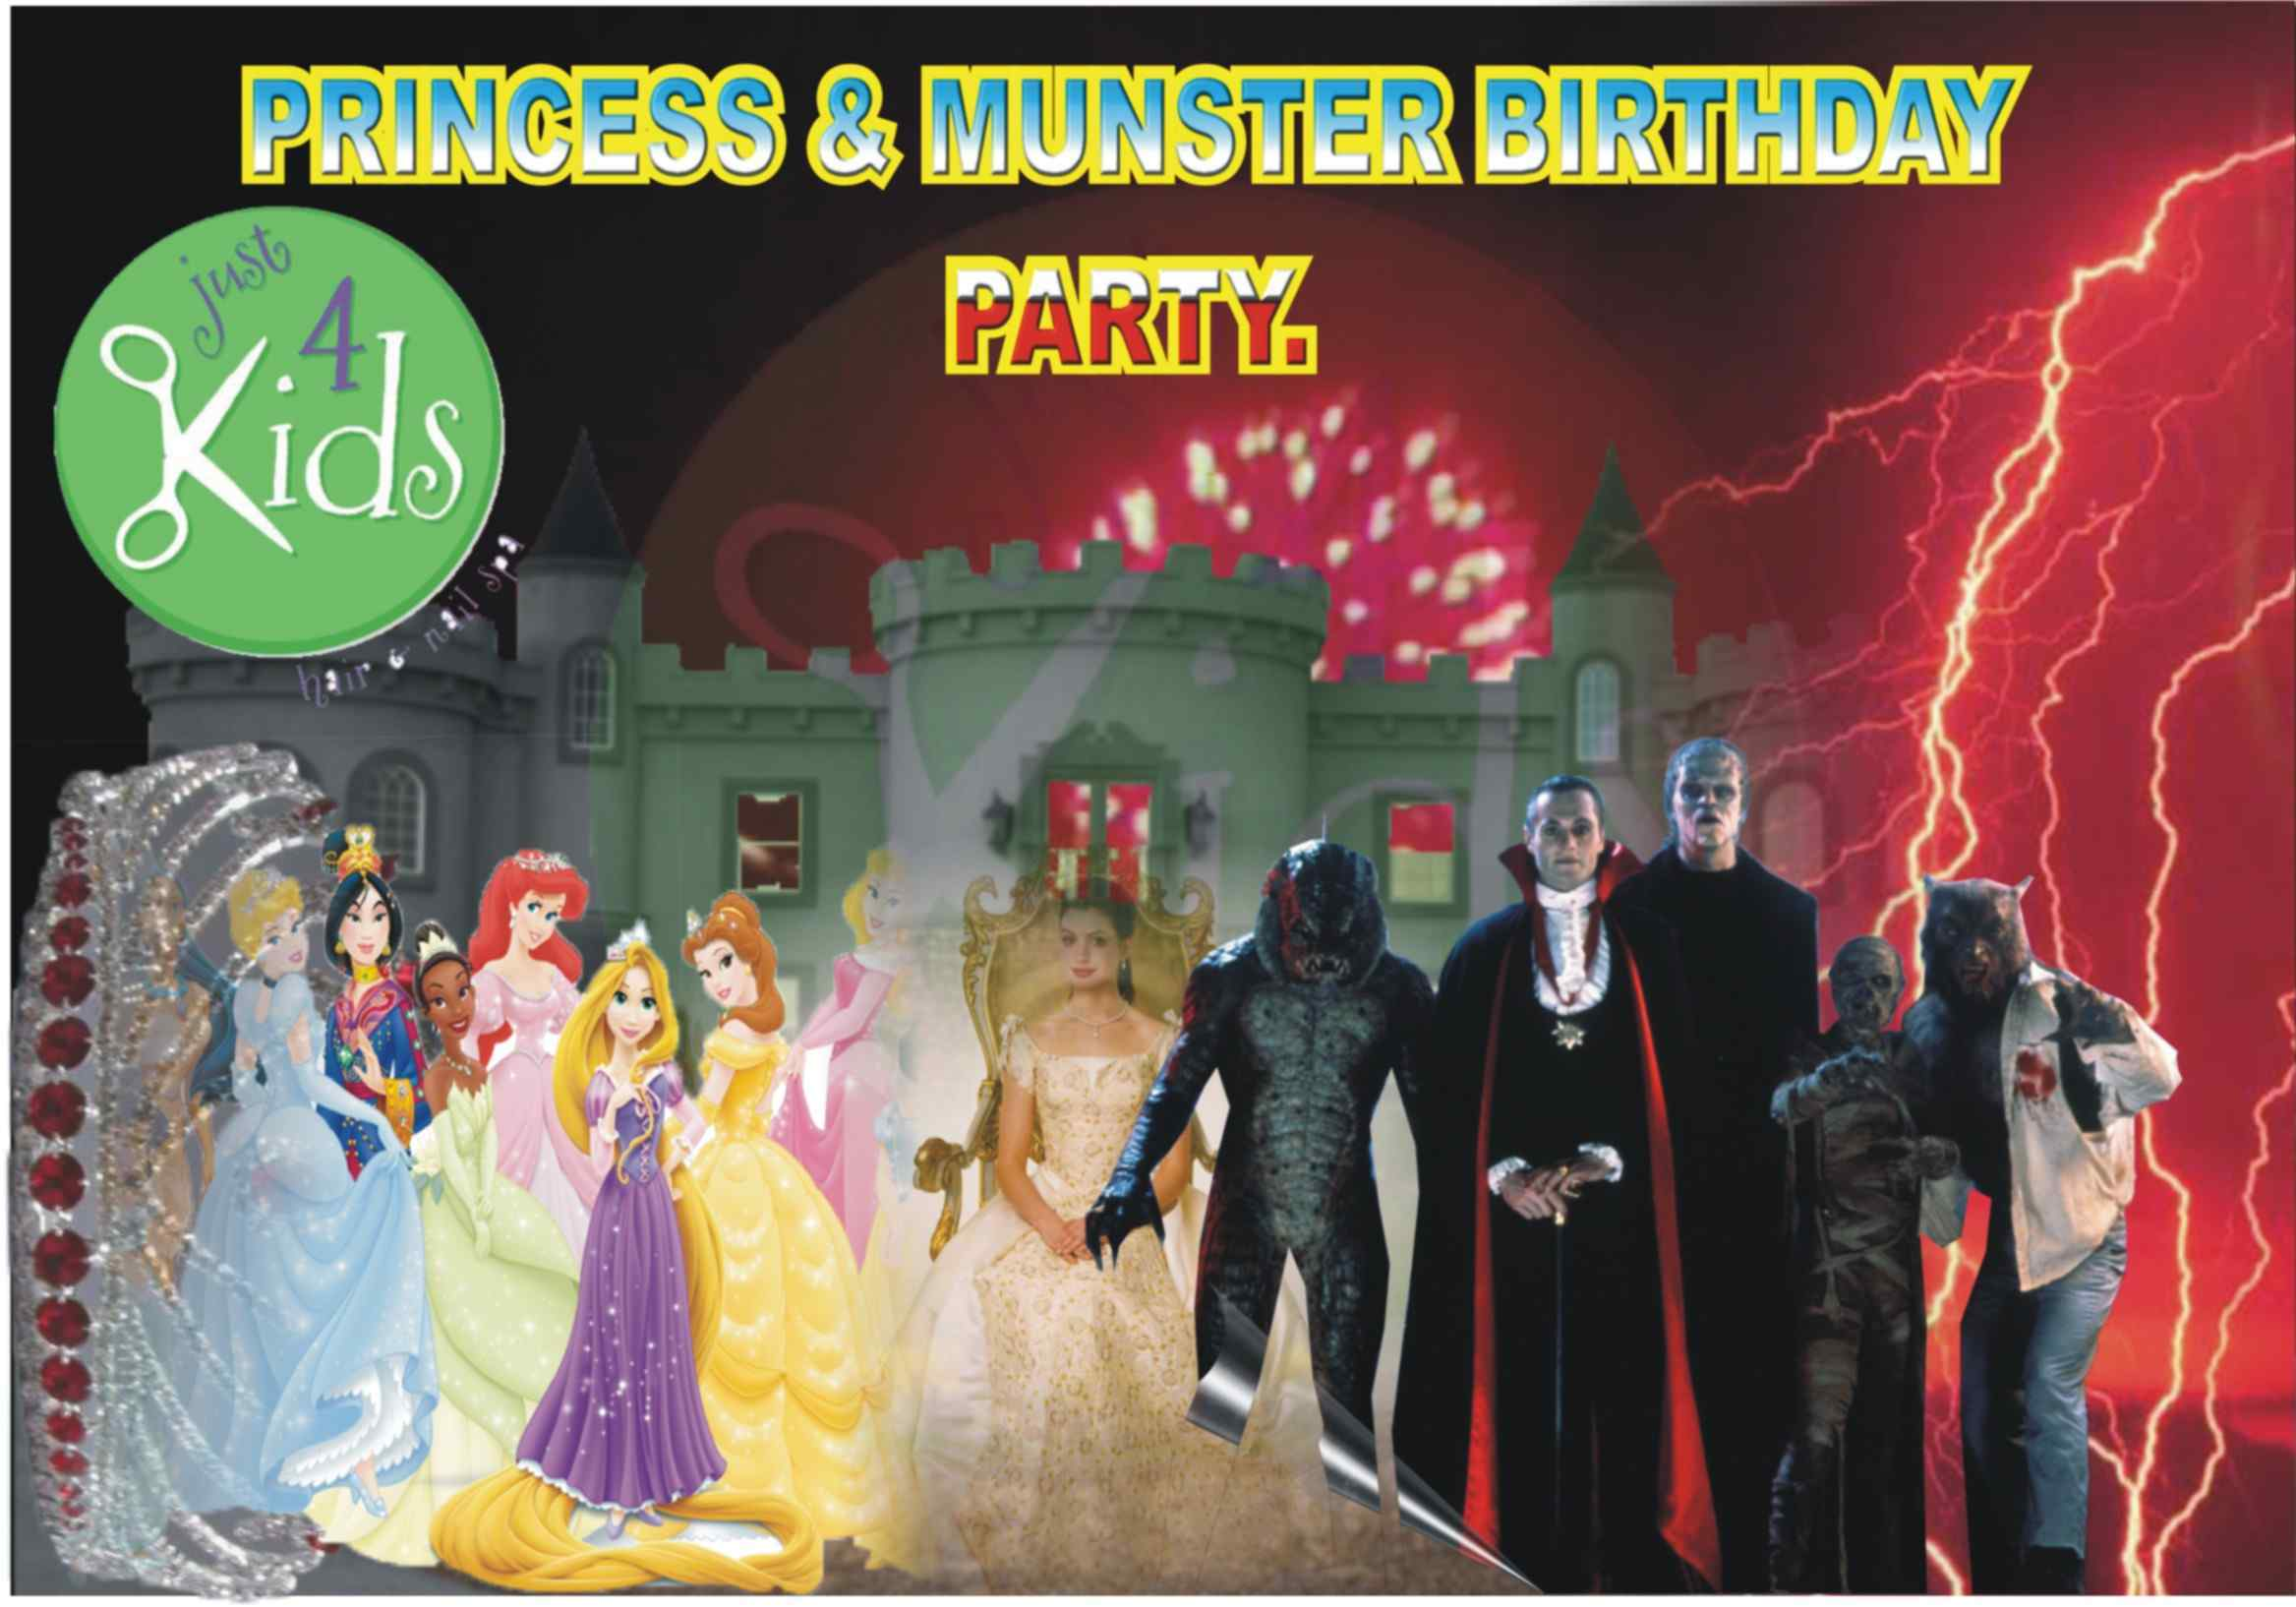 Princess and Munster Birthday Party